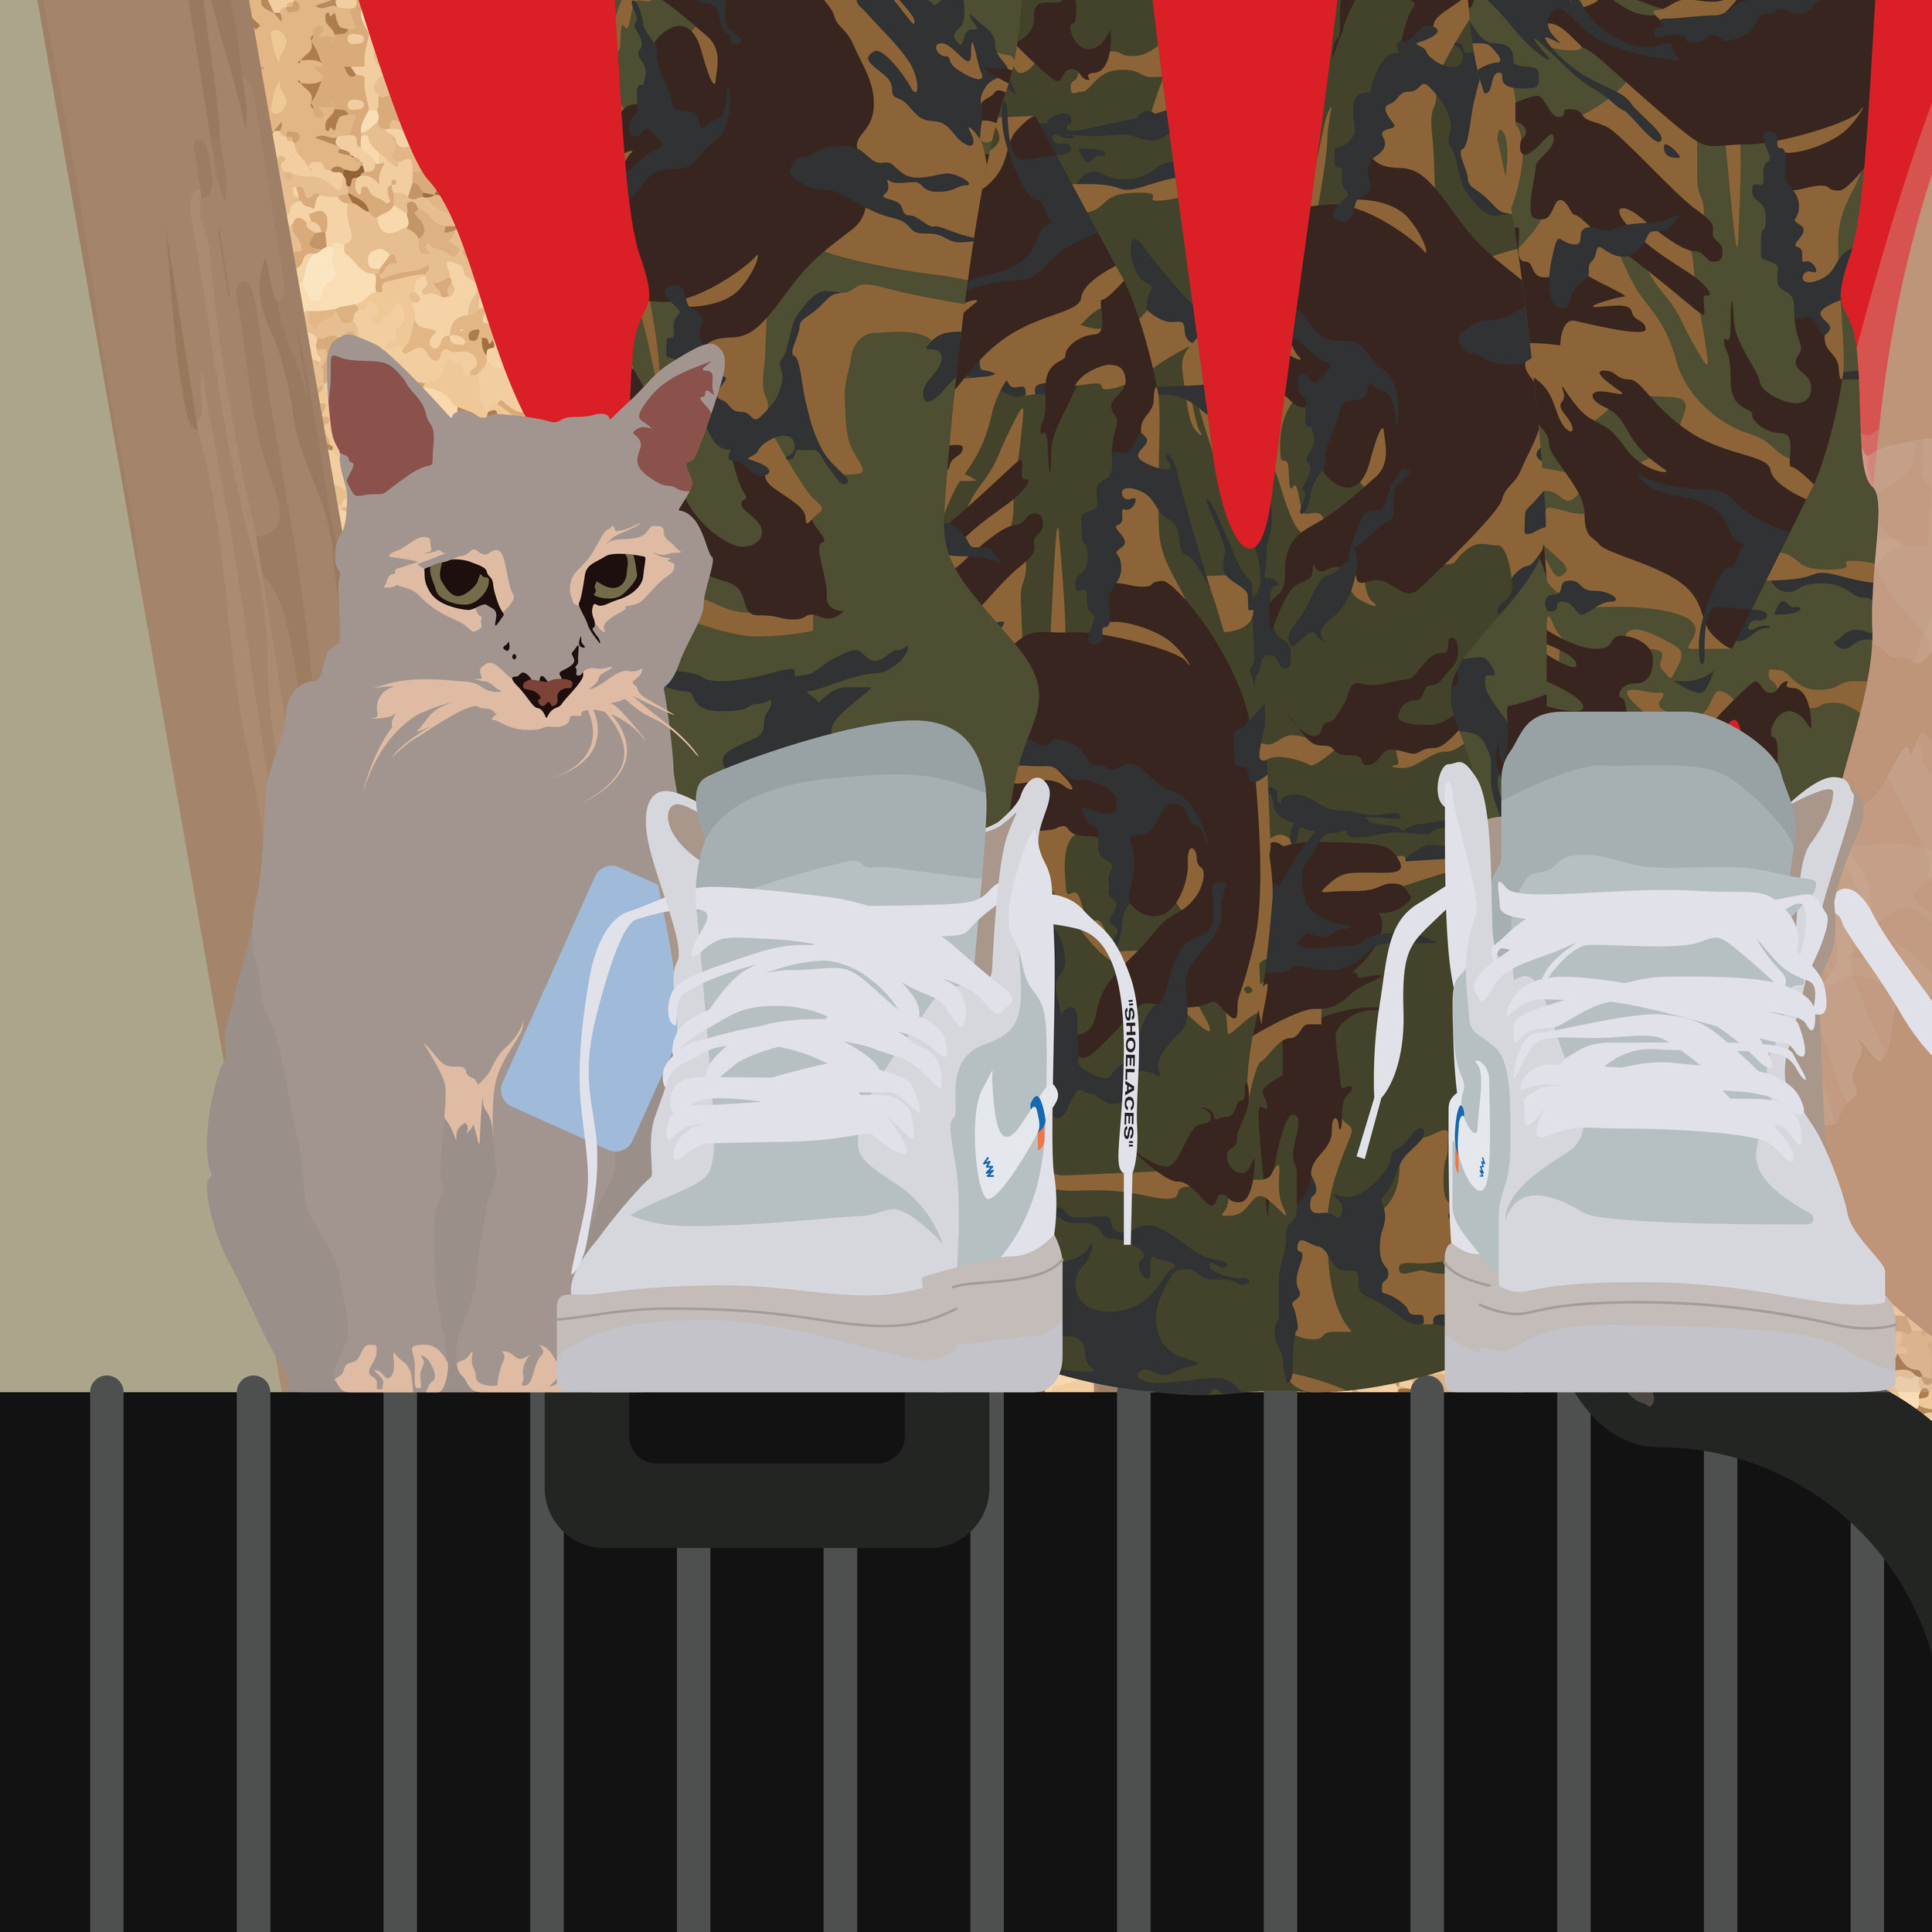 Left to right: Comtesse Odette, Abloh Nike Air Jordan 1, Louis Vuitton Sweater, Off_White Camo Pants